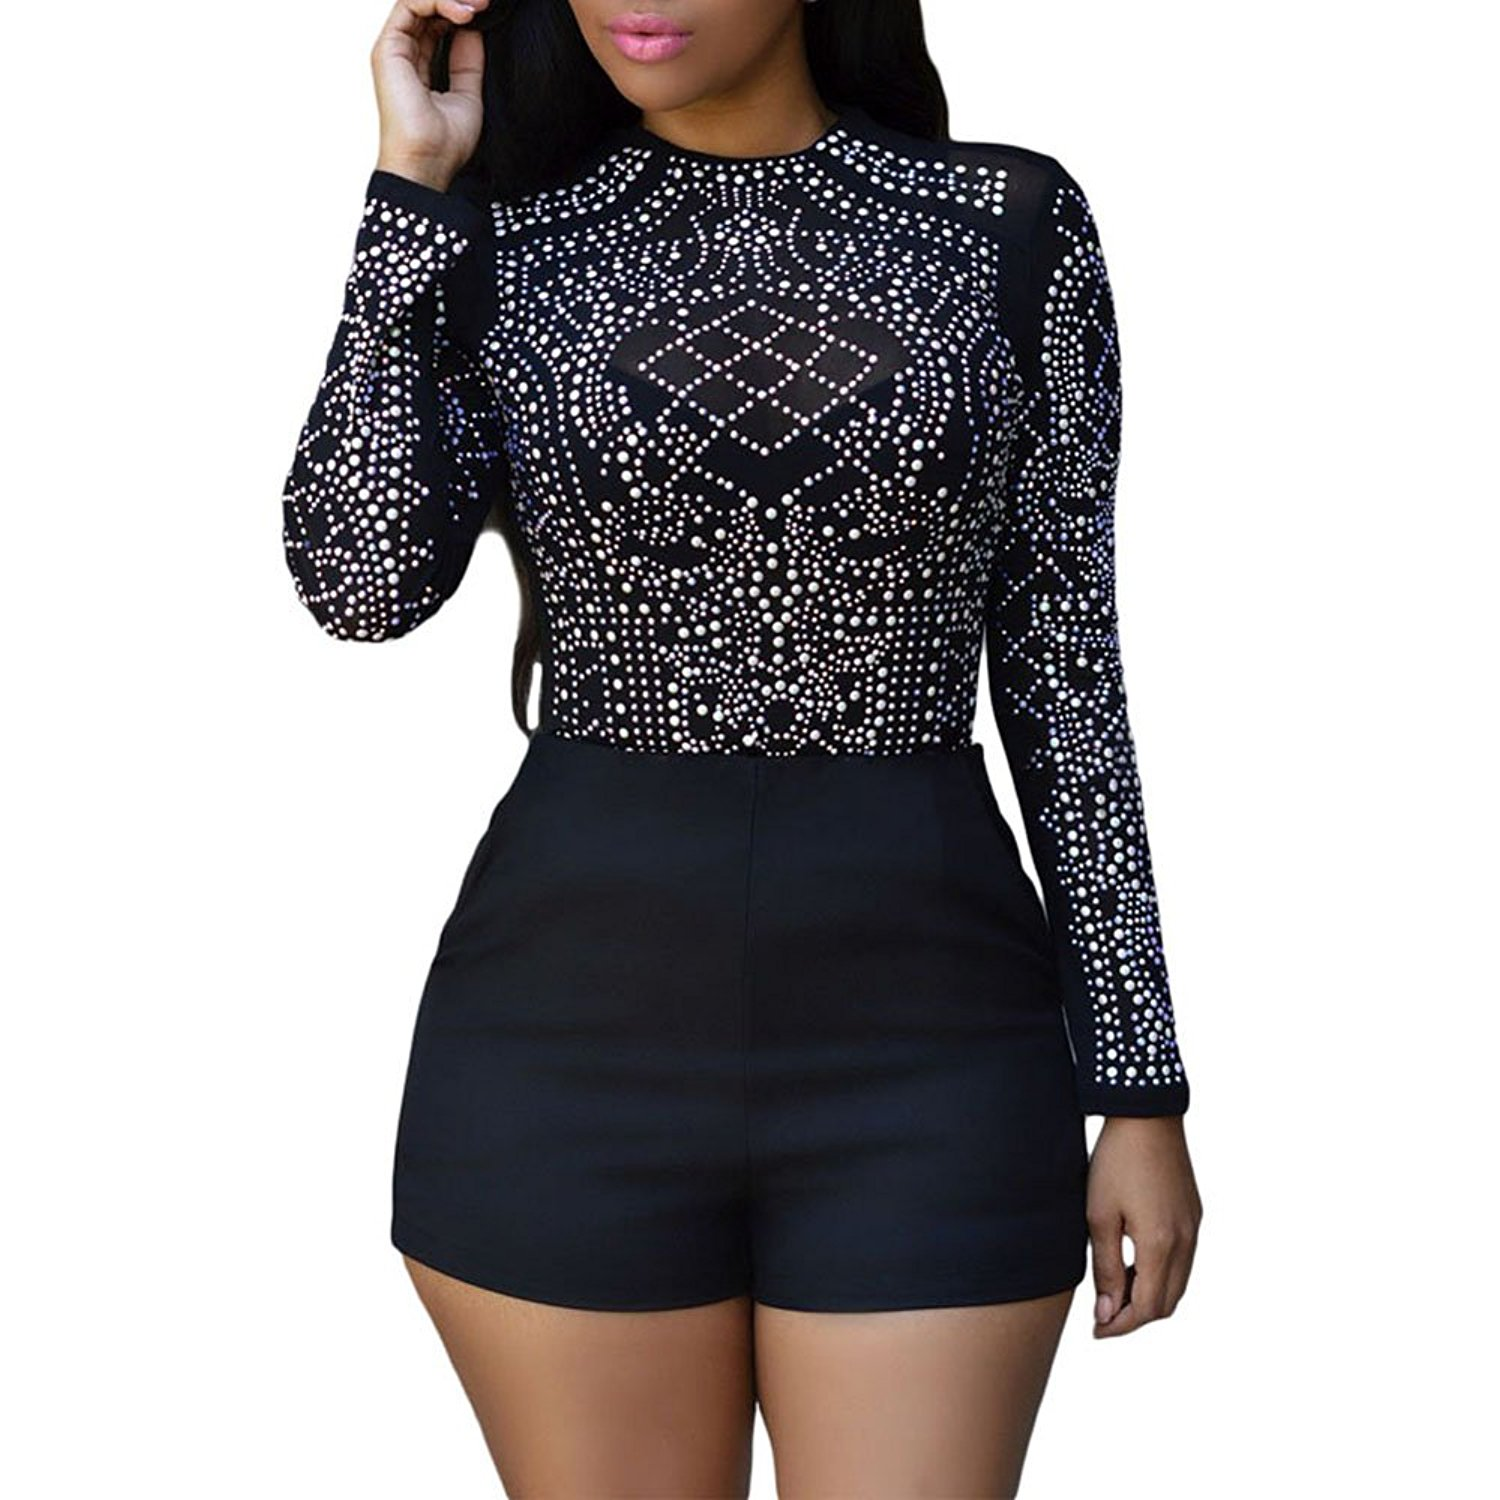 Kalin L Women Sexy Clubwear Mesh Sheer Stones Studded Long Sleeve Tops Shirts Blouse